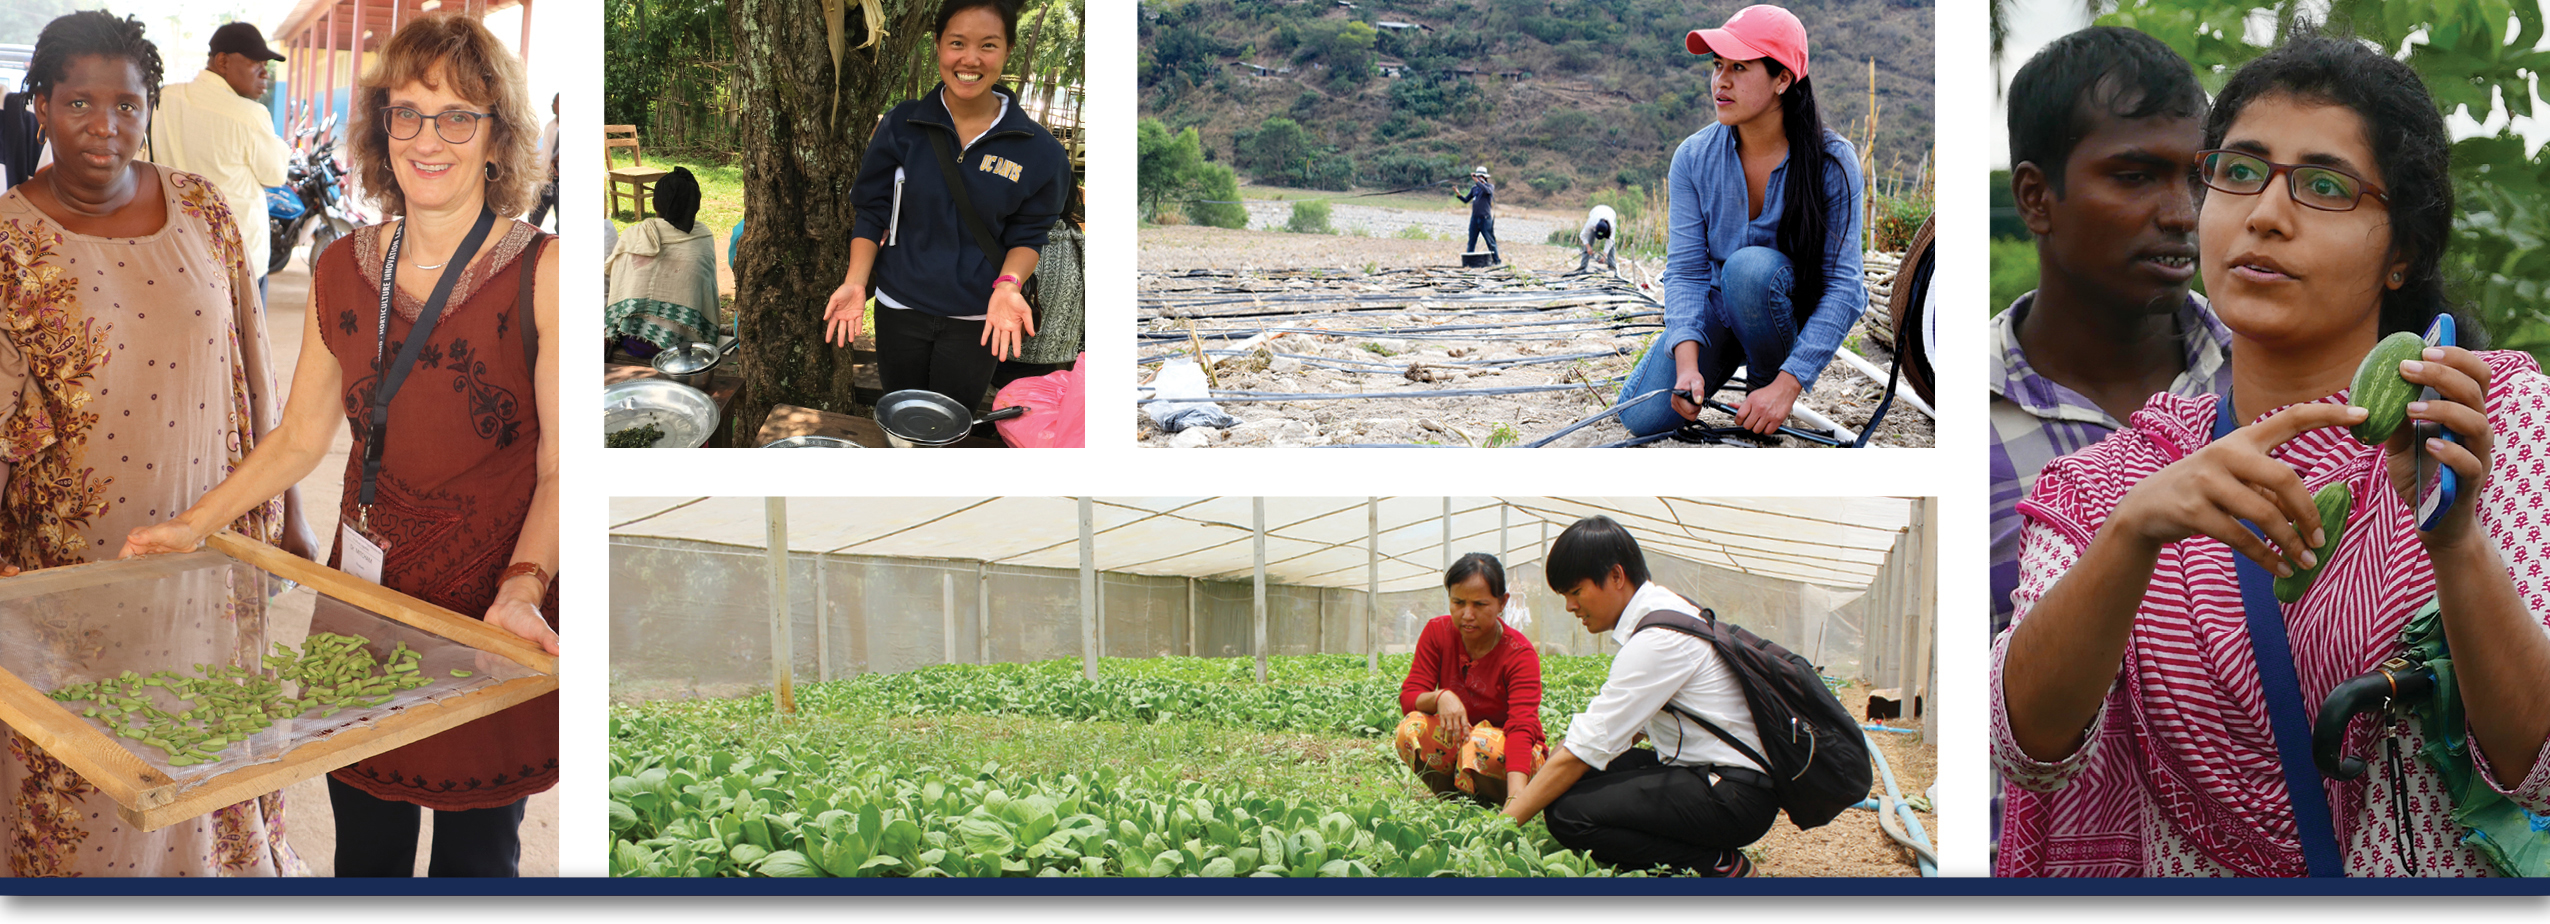 Horticulture Innovation Lab collage showing scientists, students, and farmers working with fruits and vegetables